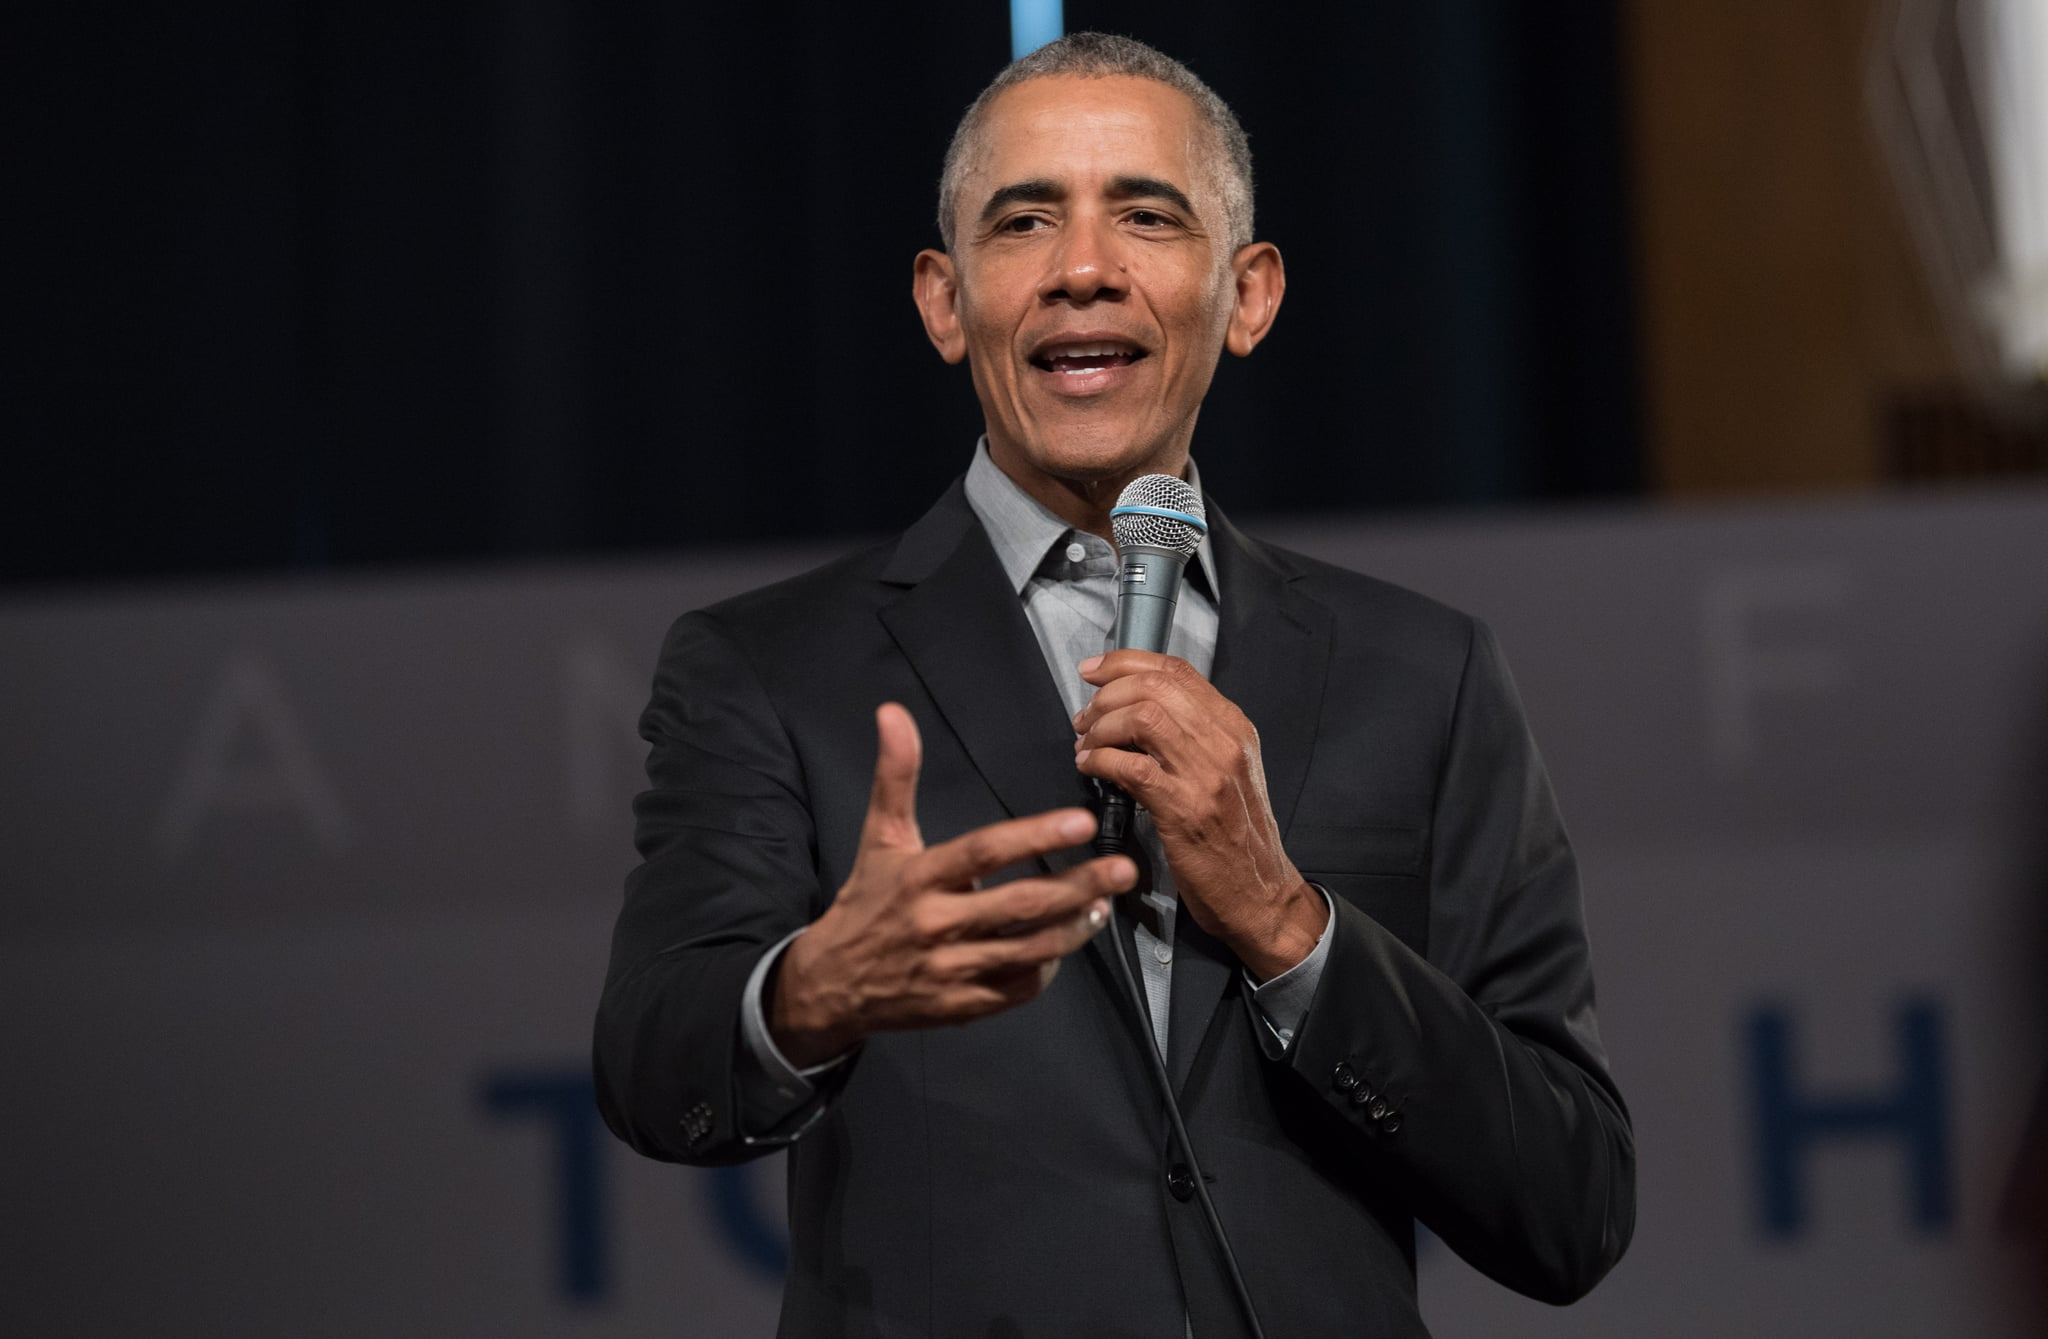 06 April 2019, Berlin: Former US President Barack Obama addresses questions from young people at a Town Hall event at the European School of Management and Technology. According to his foundation, around 300 young people from Europe who are involved in areas such as civil society, integration or food security participate. Photo: Jörg Carstensen/dpa (Photo by Jörg Carstensen/picture alliance via Getty Images)